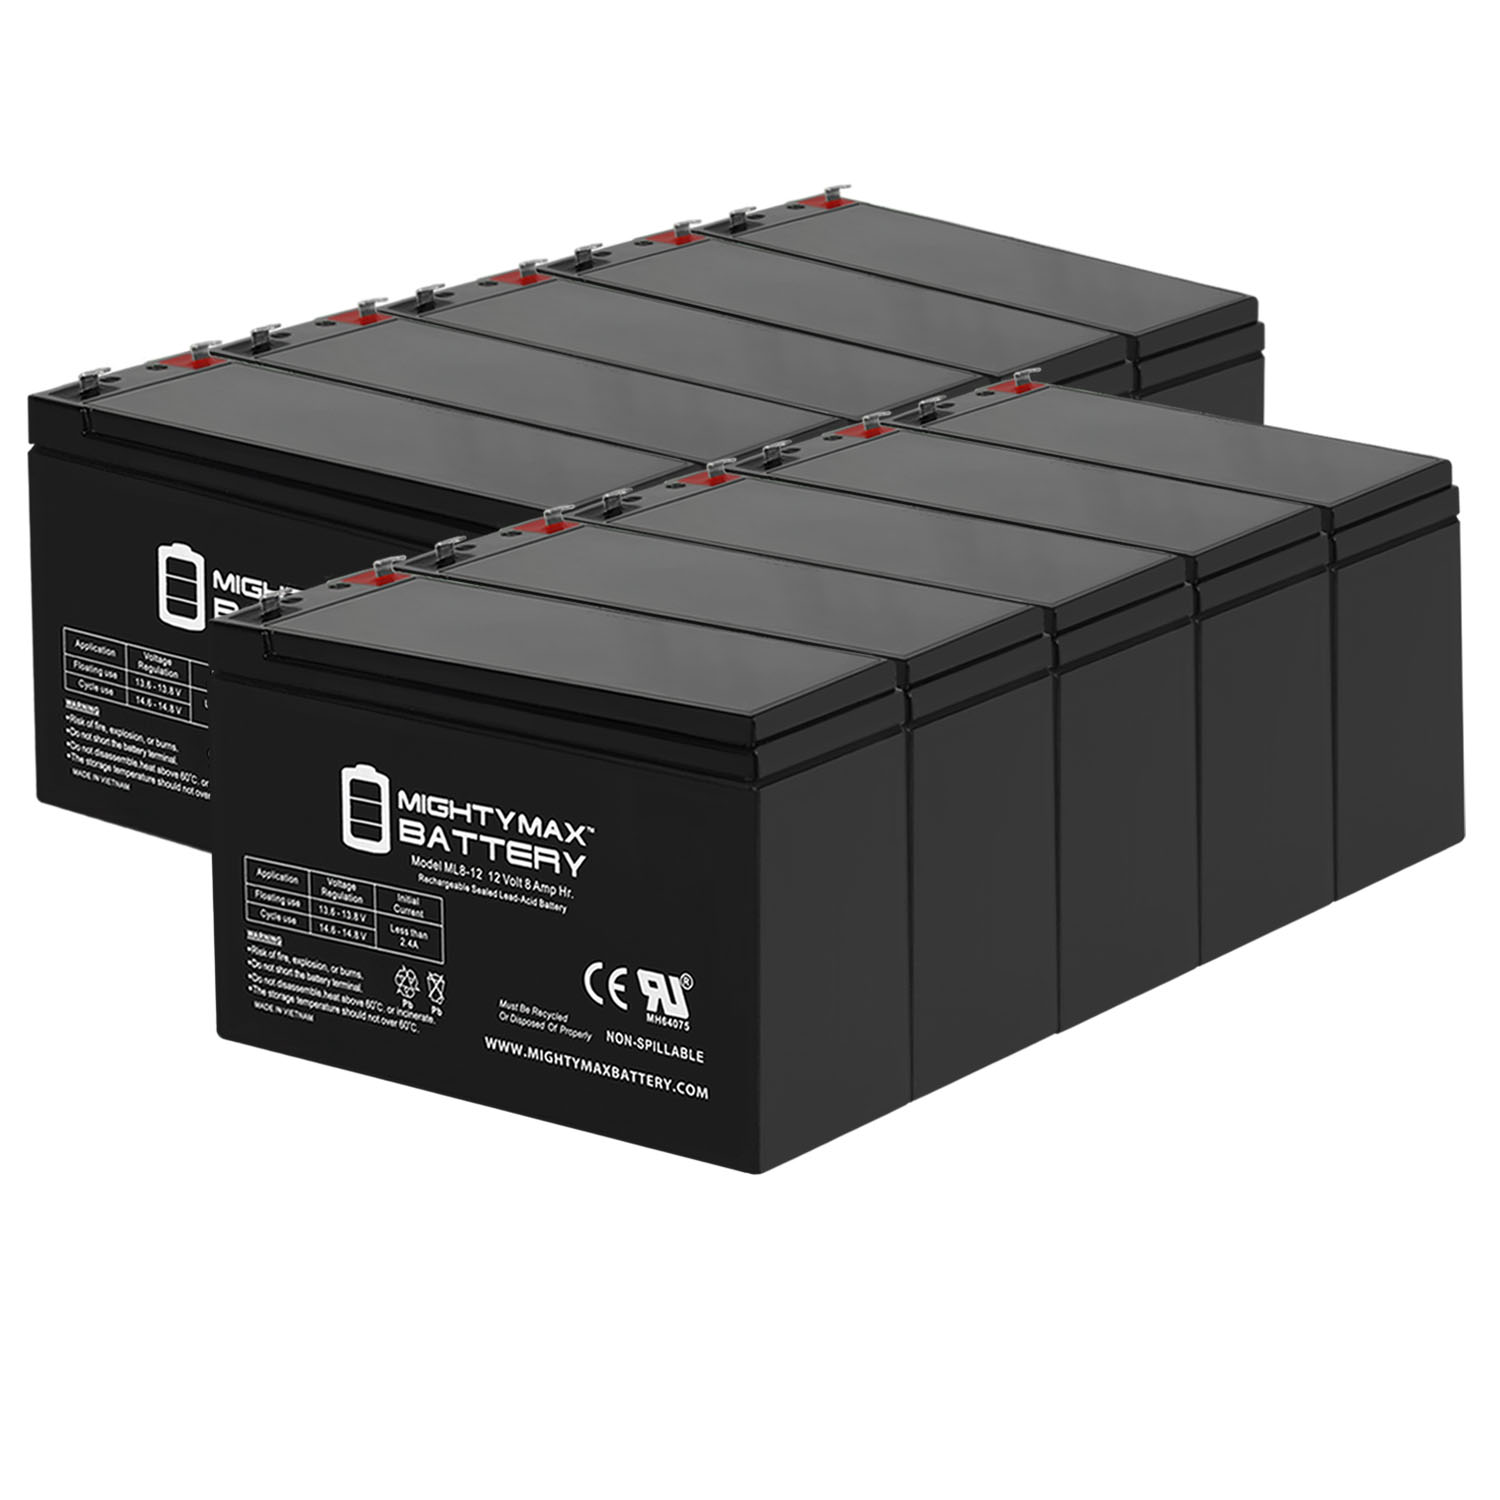 12V 8AH SLA Replacement Battery compatible with Interstate SLA1081 - 10 Pack